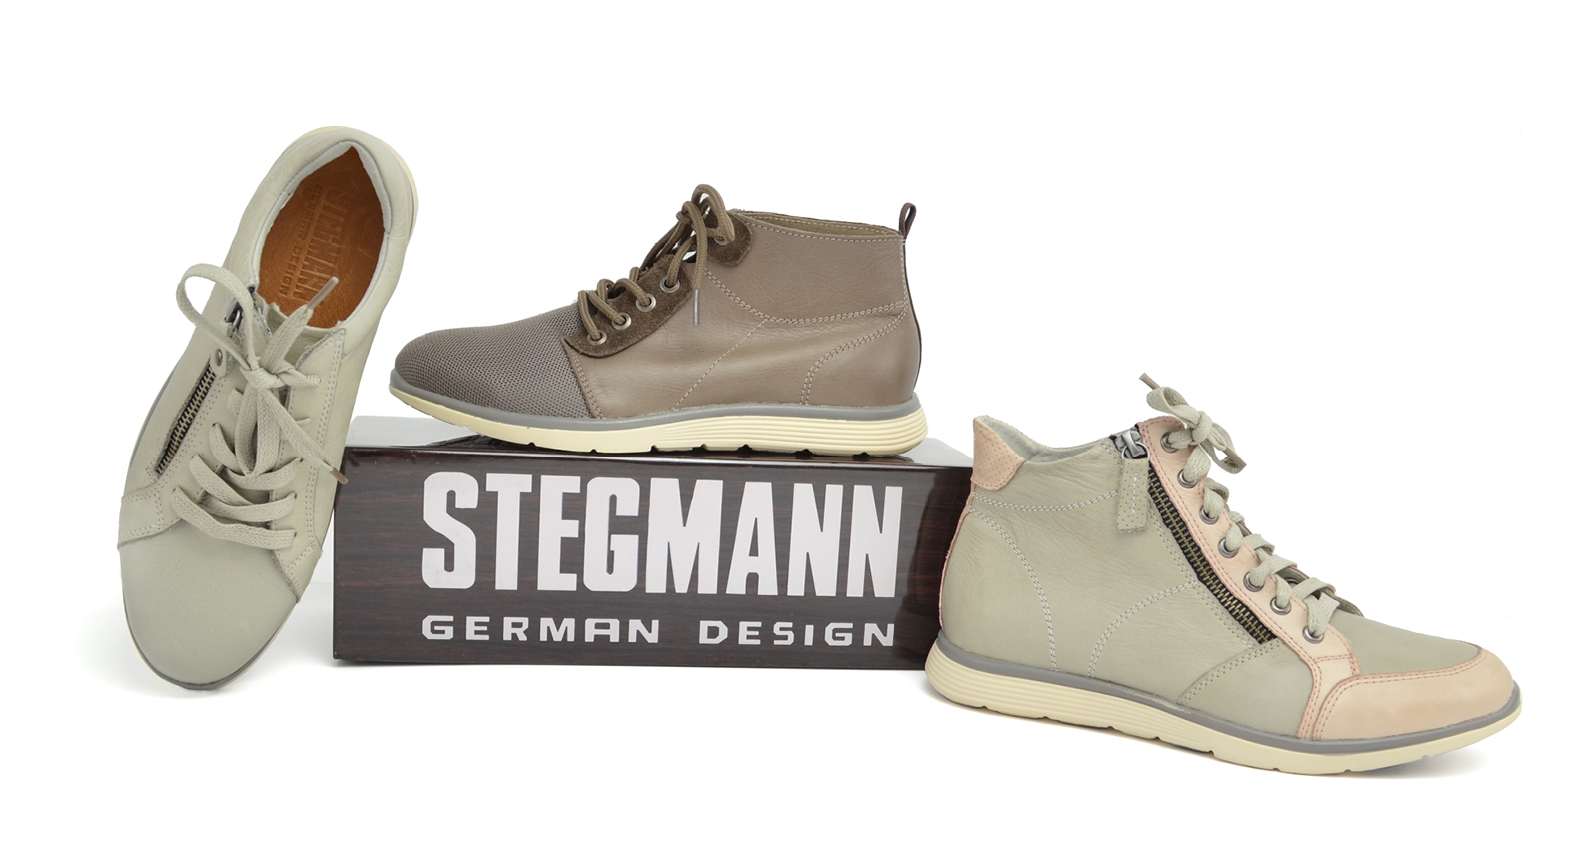 60ad03dab41 Buy Stegmann leather comfort casuals online at Traffic Footwear.